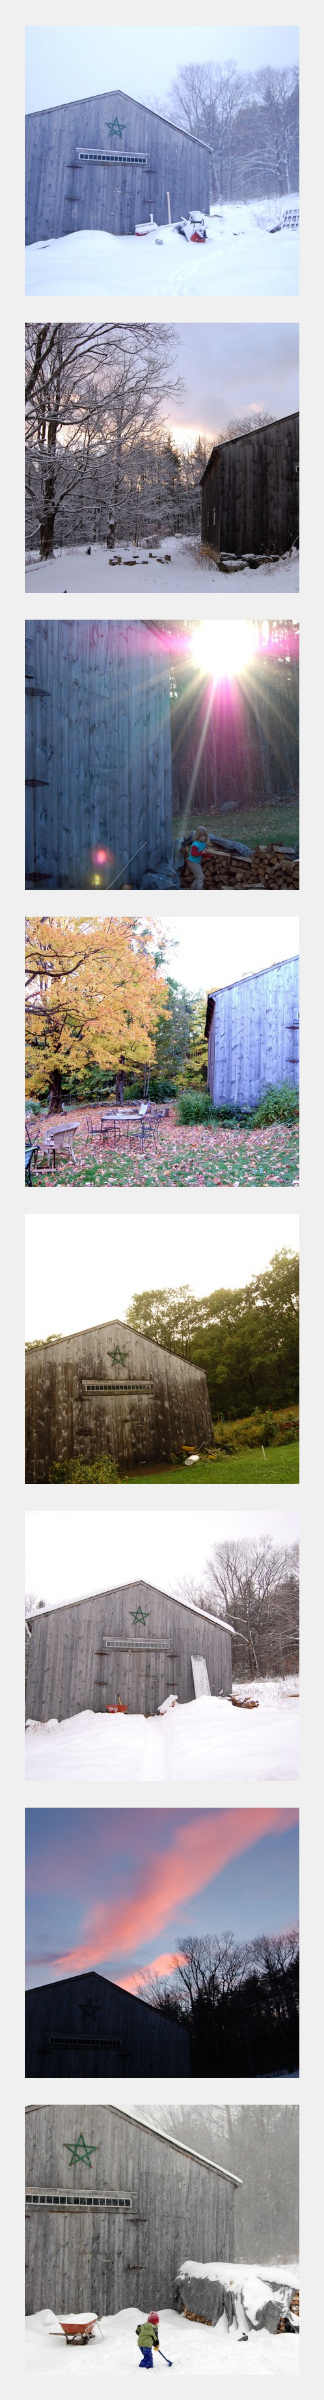 Barn collage 2